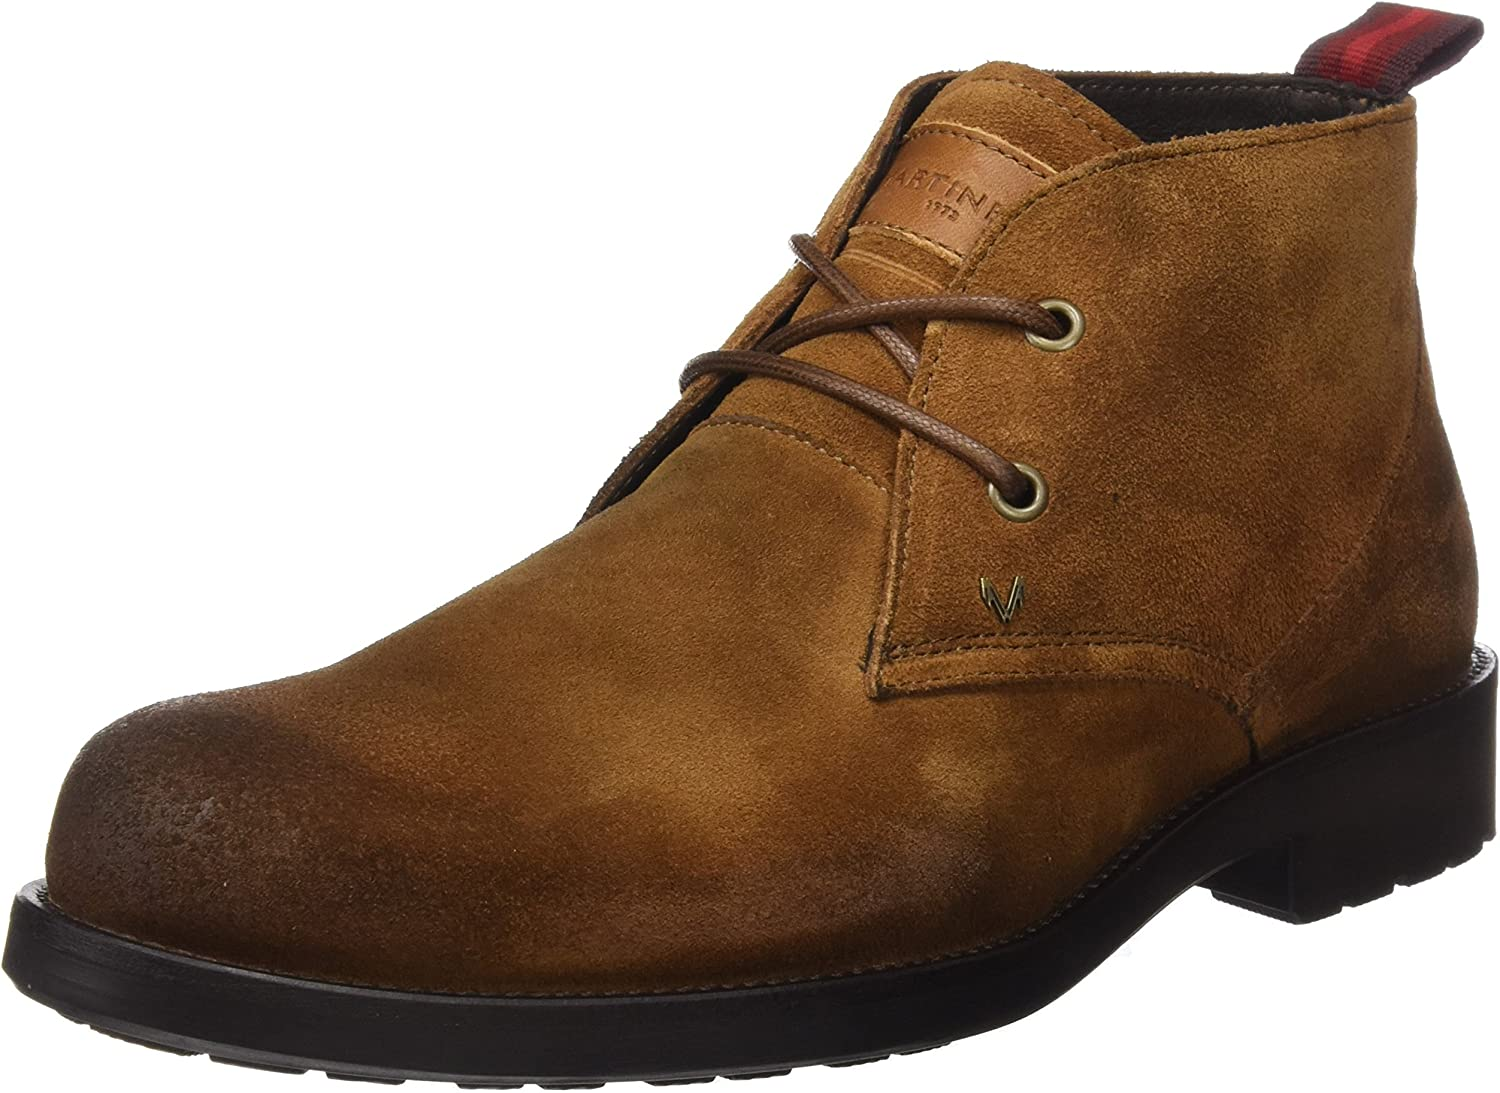 MARTINELLI Men's Keegan Ankle Boots